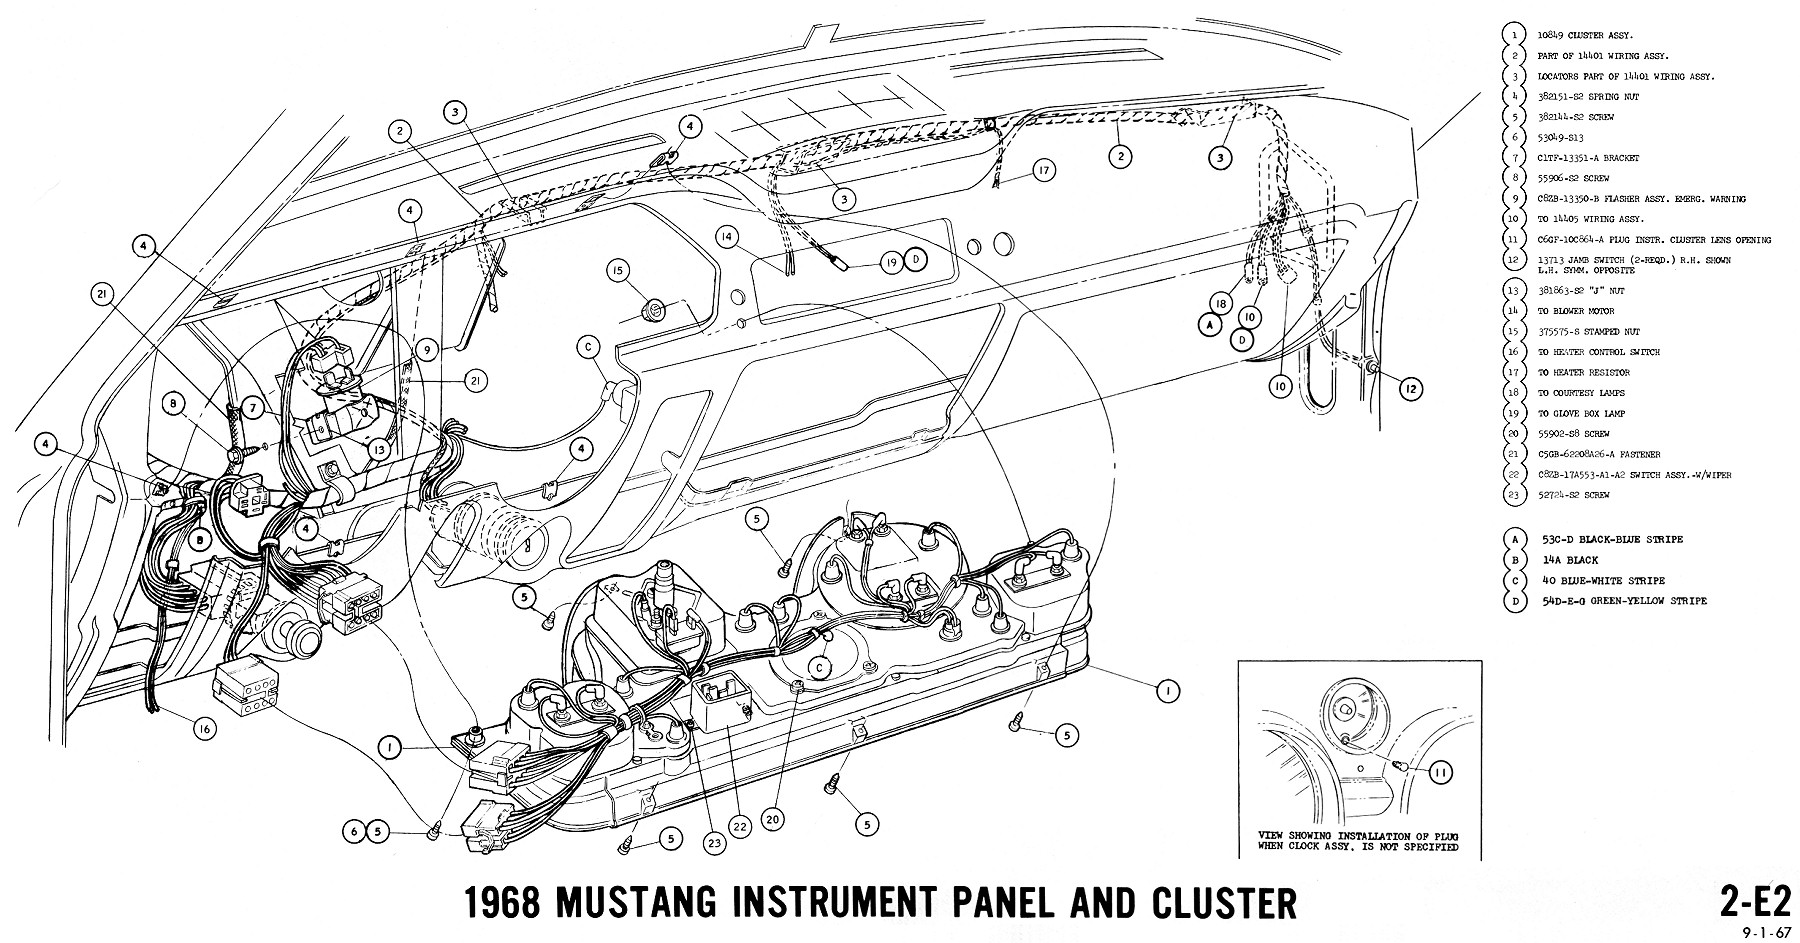 1968 mustang wiring diagram instruments 2 1968 mustang wiring diagrams and vacuum schematics average joe 1966 mustang wiring diagrams at creativeand.co